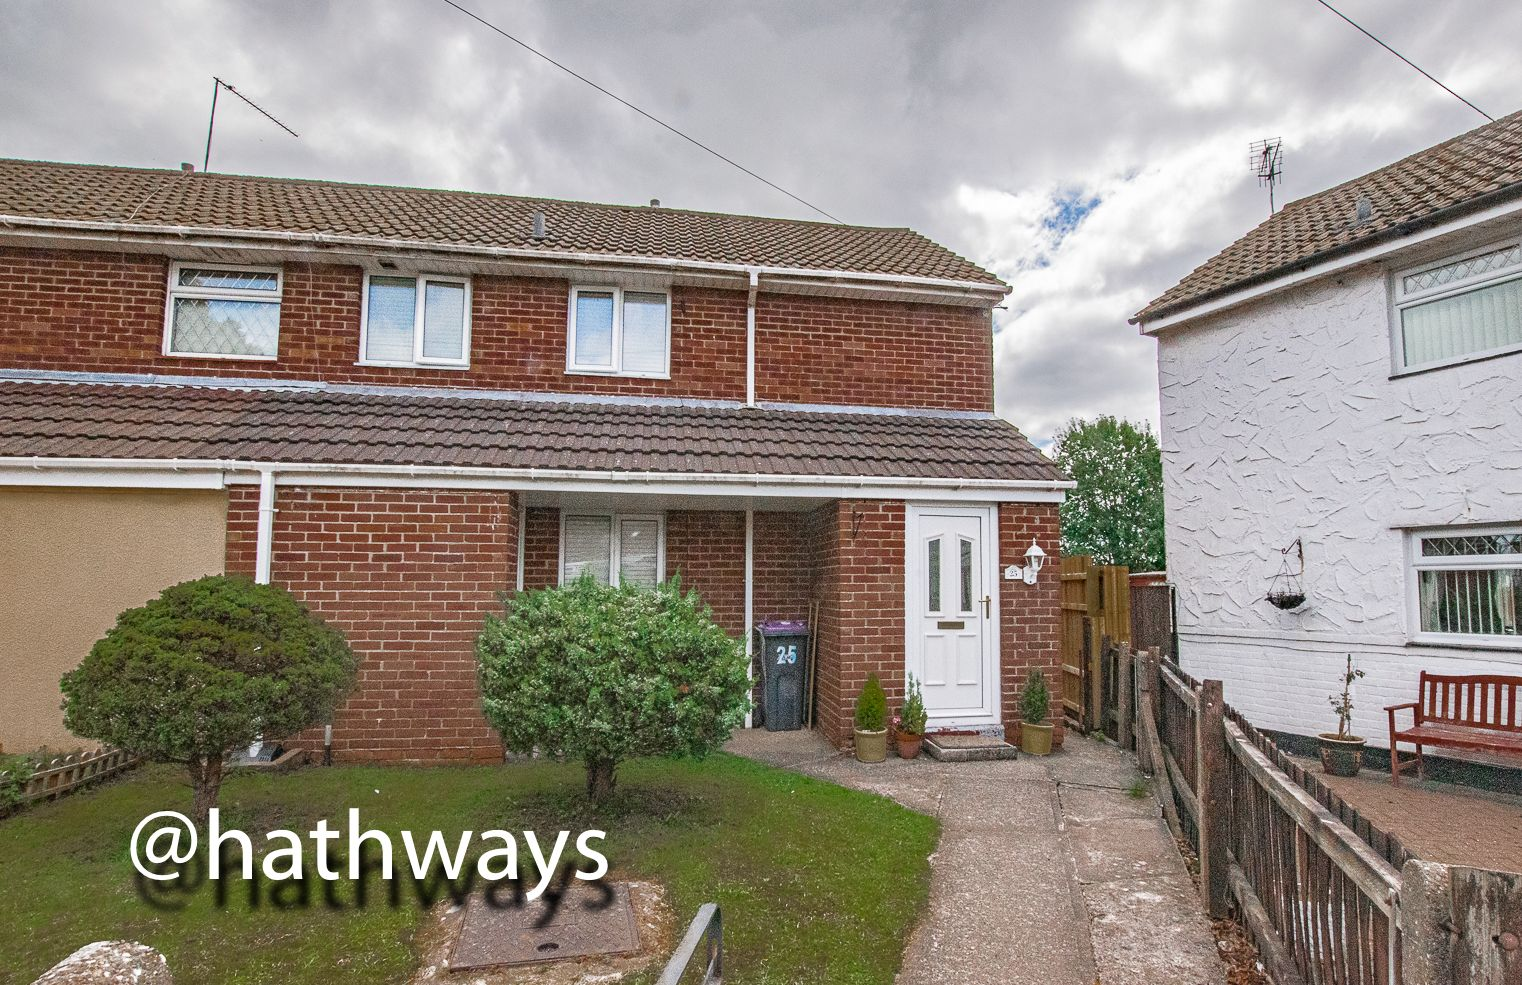 2 bed house to rent in Brangwyn Avenue, NP44